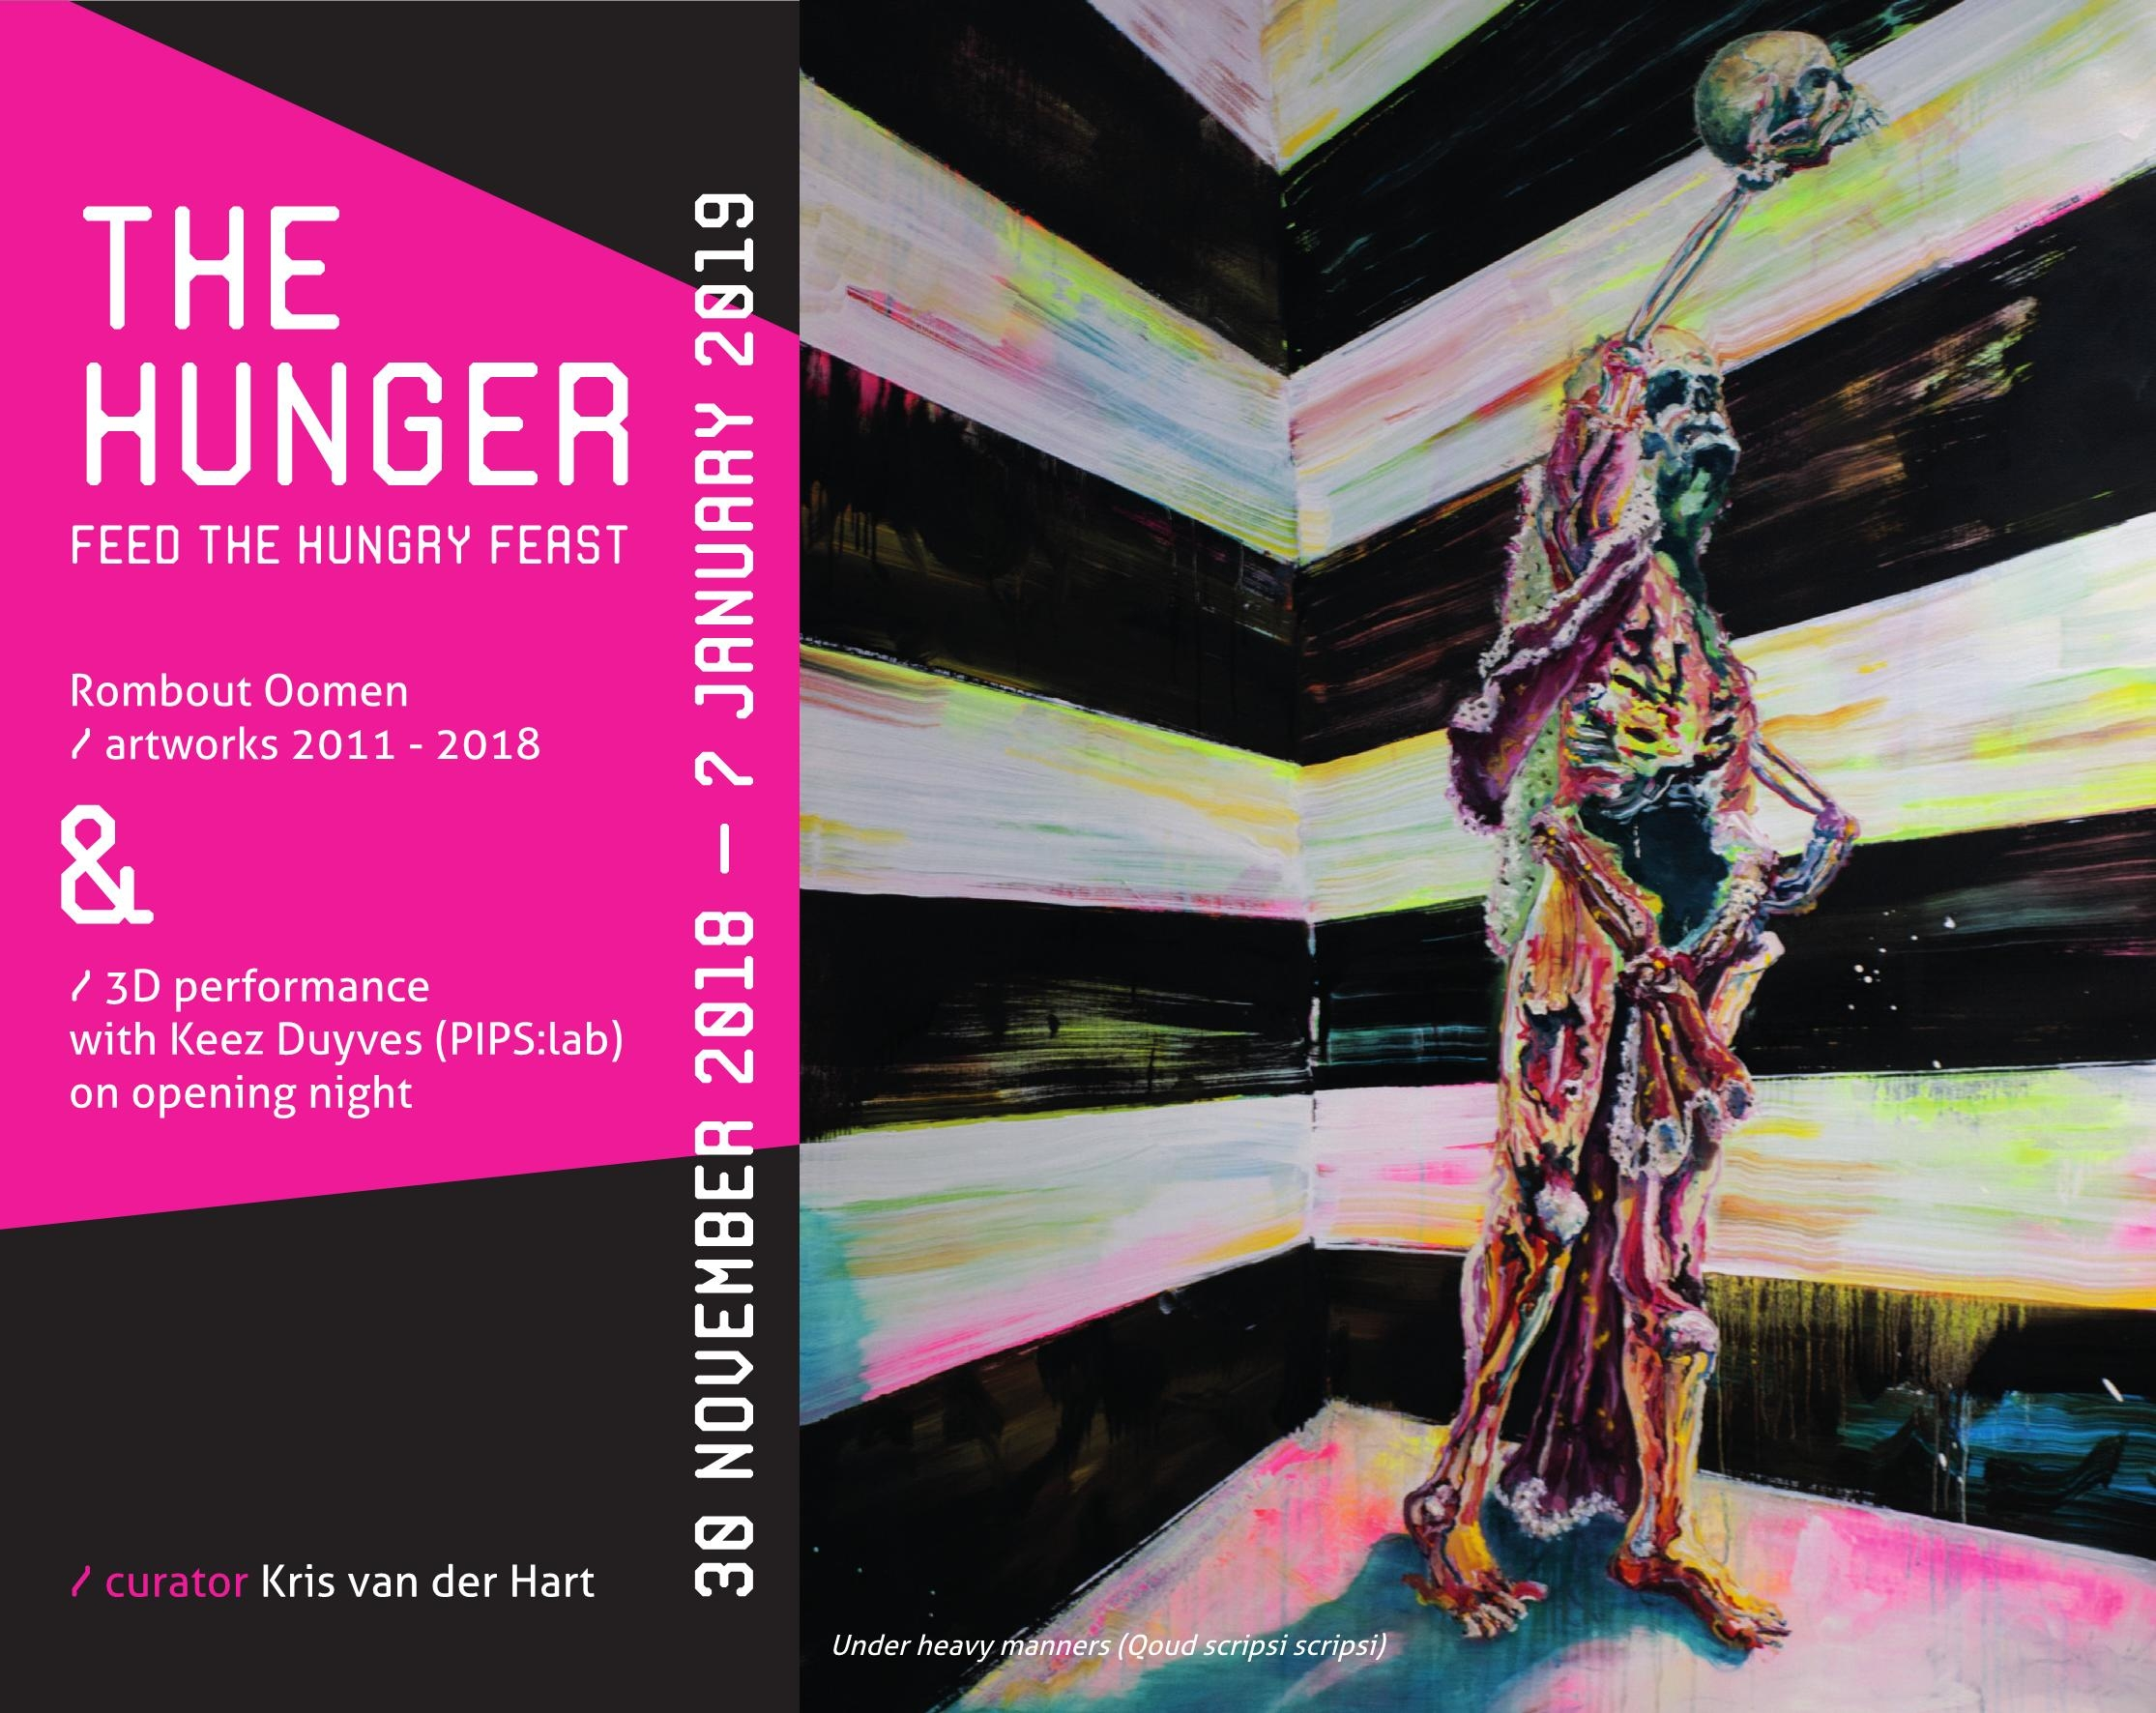 The Hunger_flyer_voorzijde.jpg